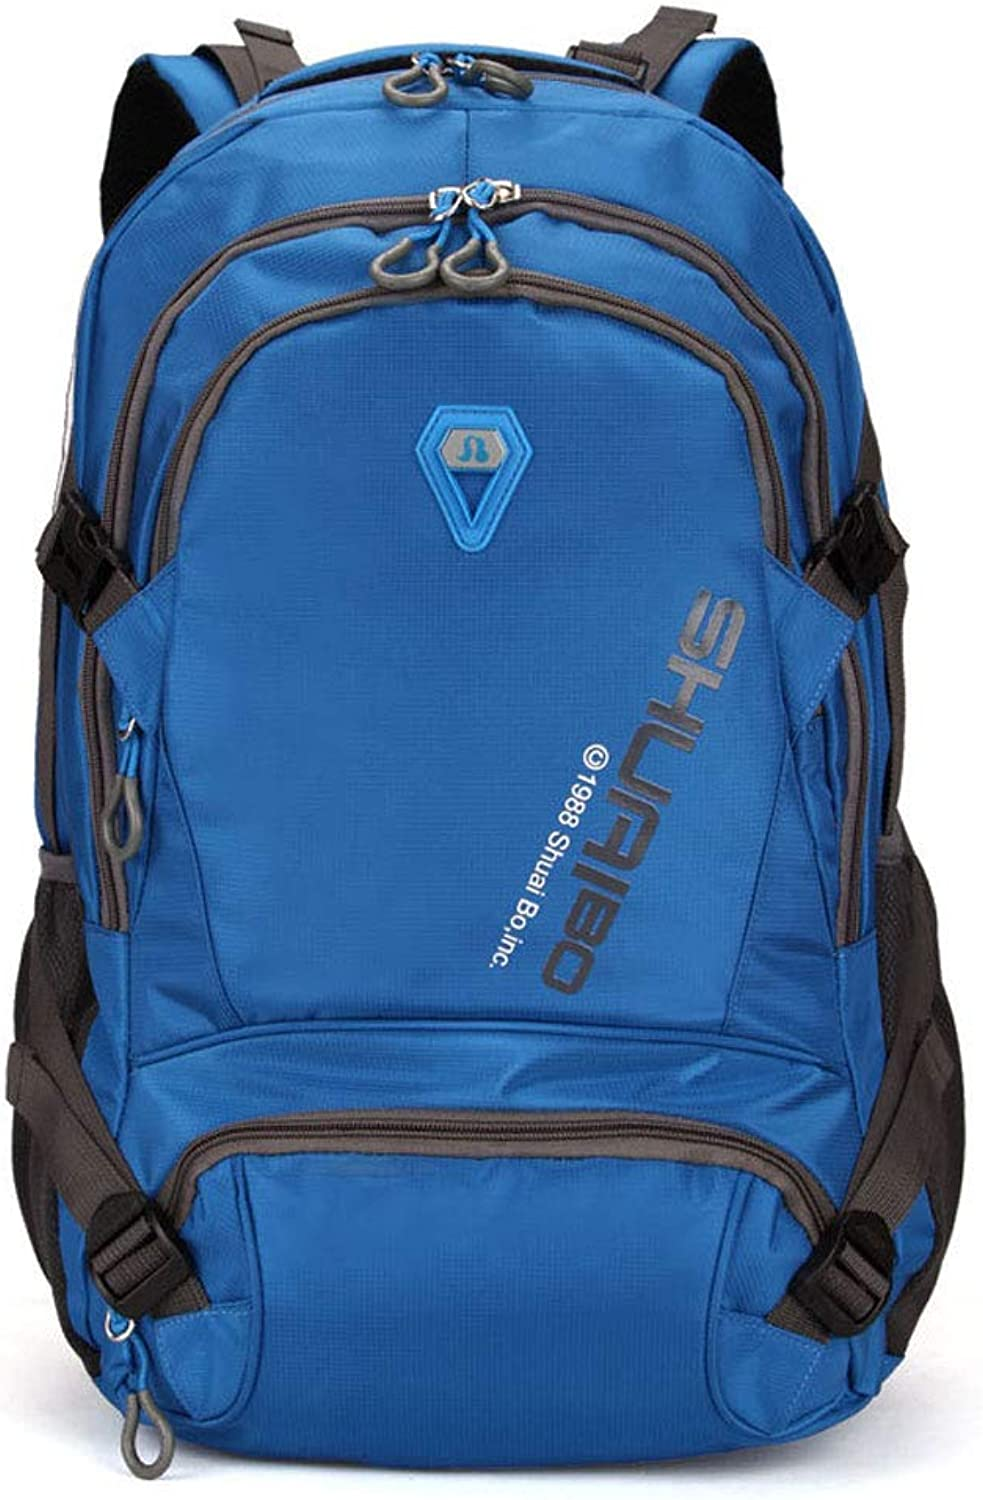 Backpack mountaineering large capacity backpack outdoor travel sports bag leisure computer student bagblueee